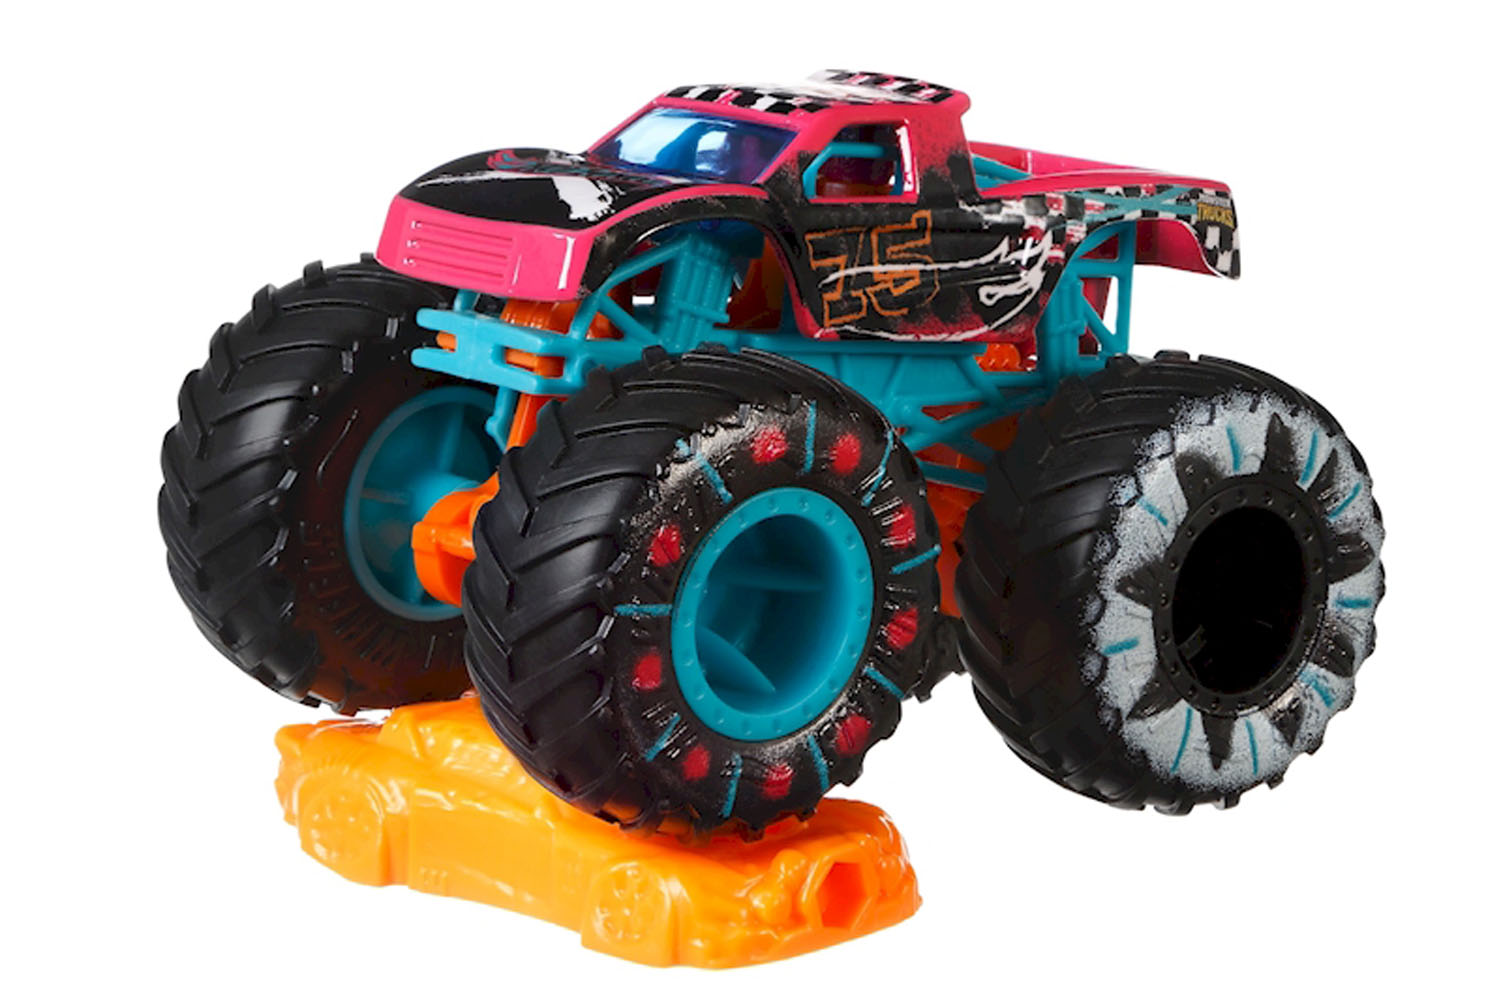 Hot Wheels Monster Trucks Podium Crasher Truck Connect And Crash Car Included 10 50 1 64 2 5 Hw Demo Derby Series Pink Pickup With Giant Wheels Ele Toys Llc